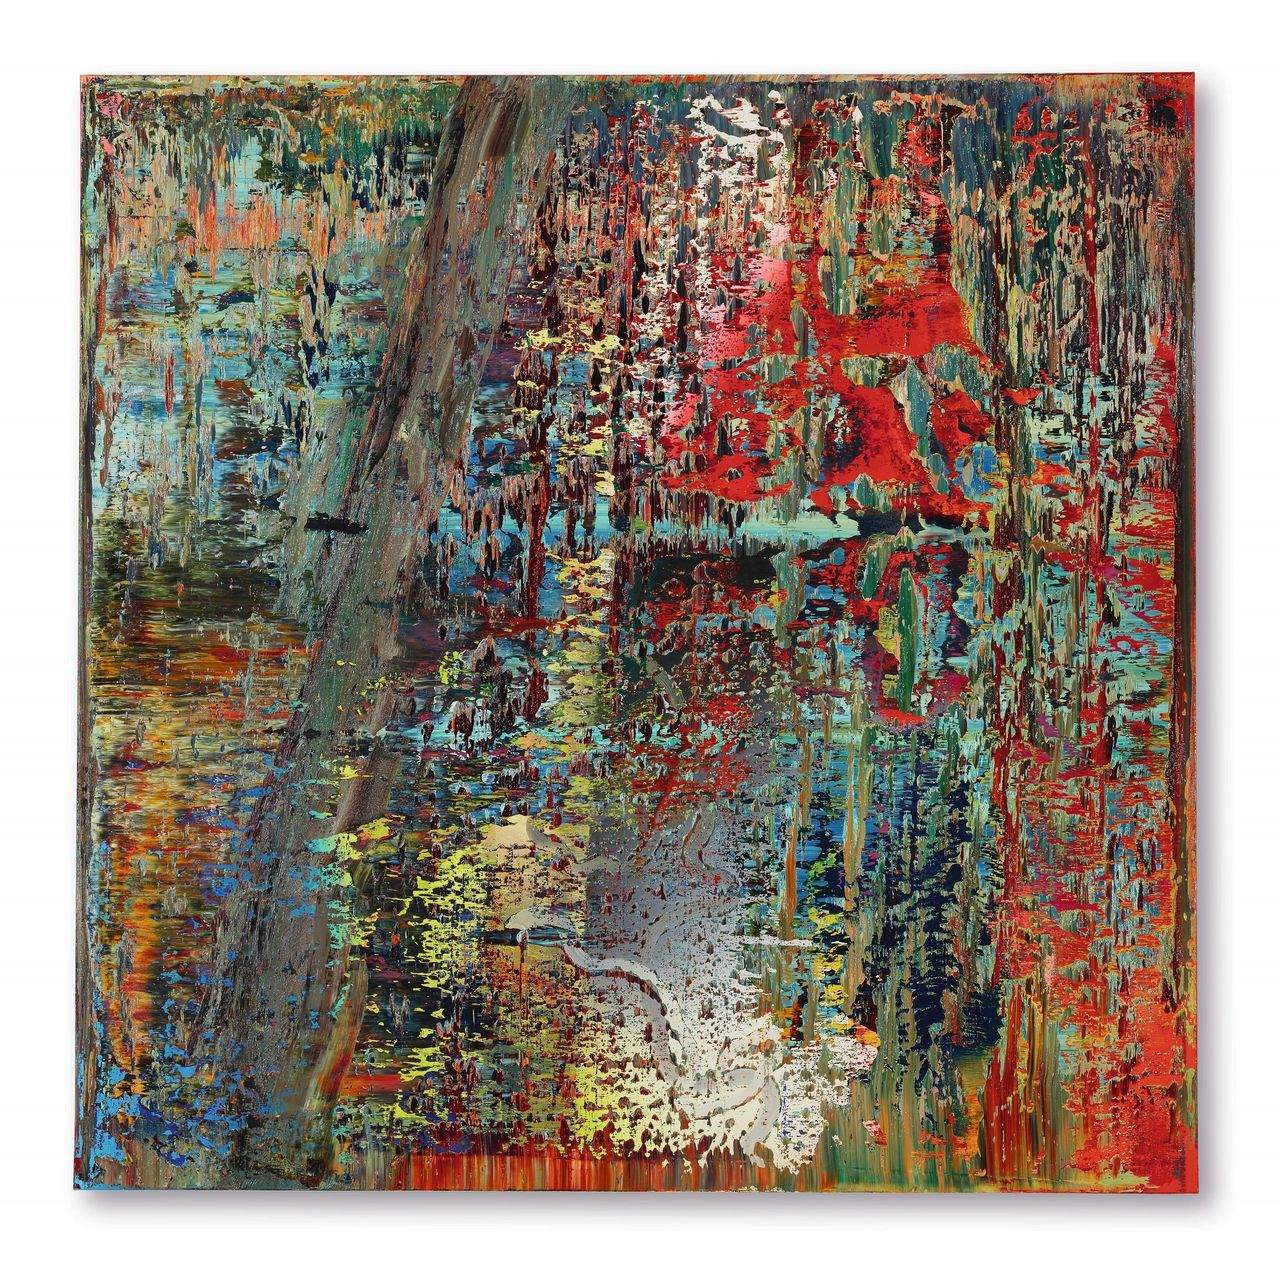 Gerhard Richter S Abstraktes Bild To Lead Sotheby S October Sales In Hong Kong Barron S